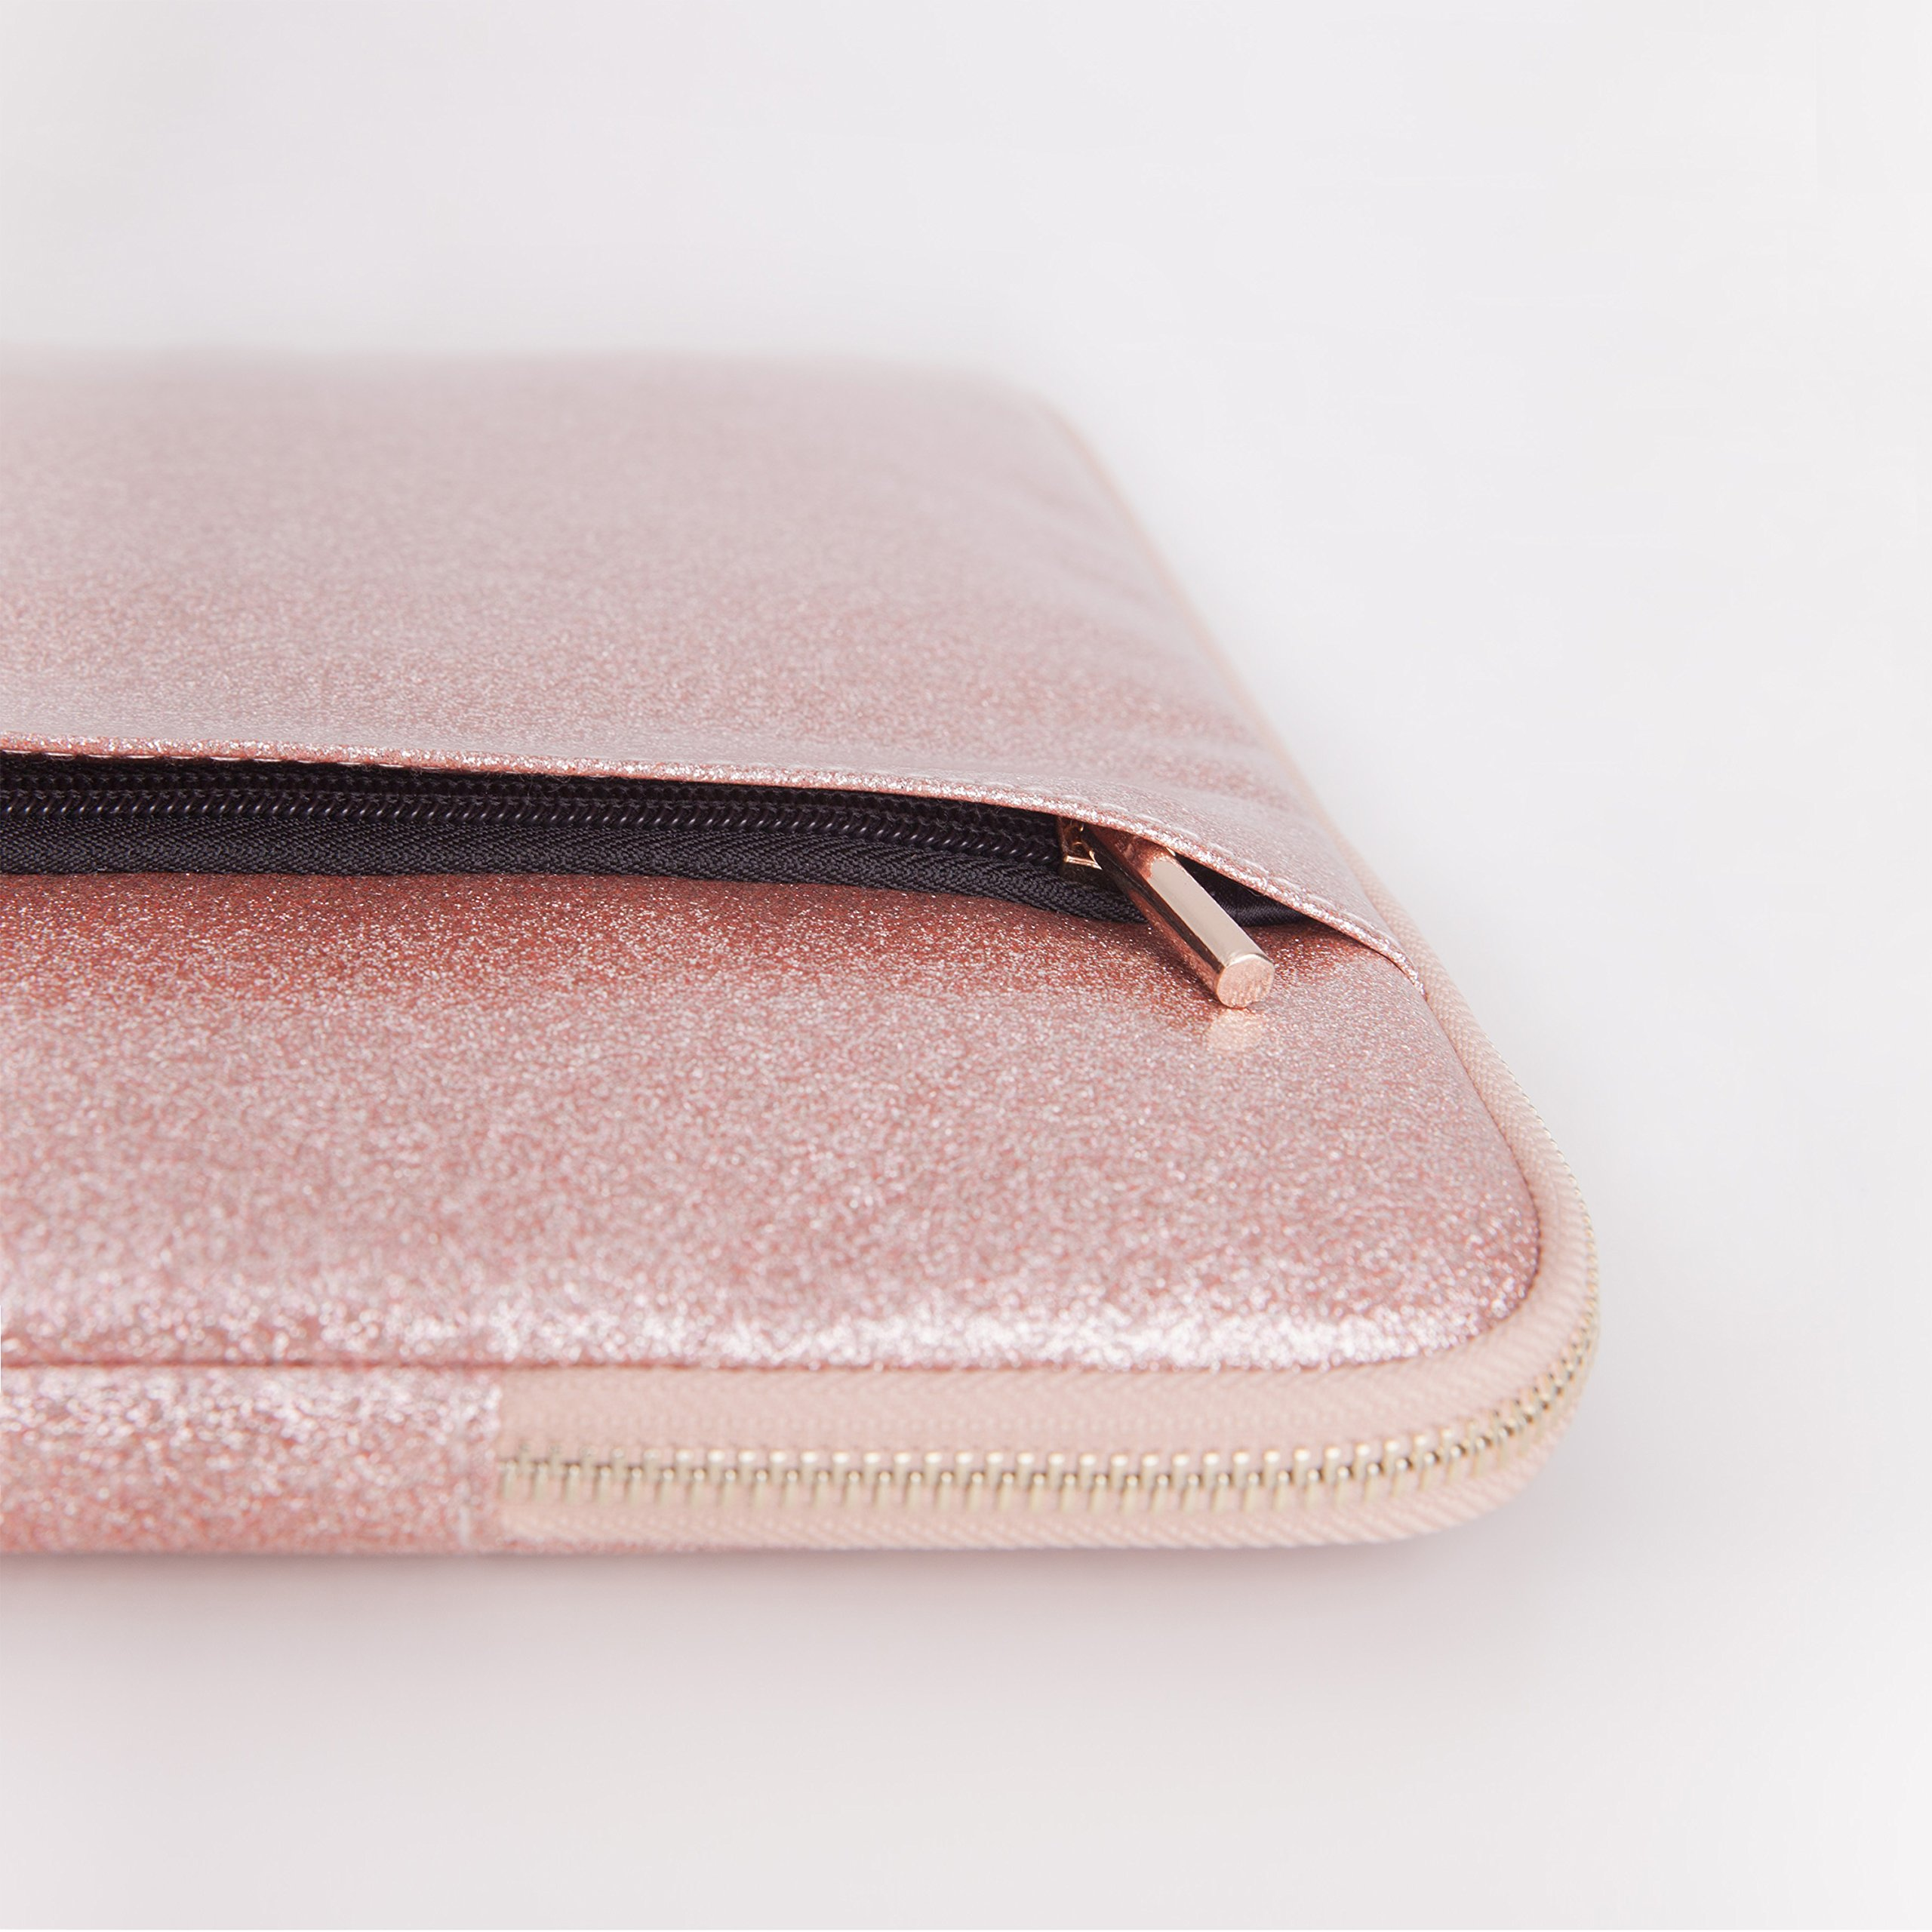 Comfyable Laptop Sleeve for MacBook Pro 13-13.3 Inch & Mac Air 13-13.3'', Notebook Computer Case w/Pocket- Waterproof & Soft Cover- Rose Gold Pink Glitter by Comfyable (Image #4)